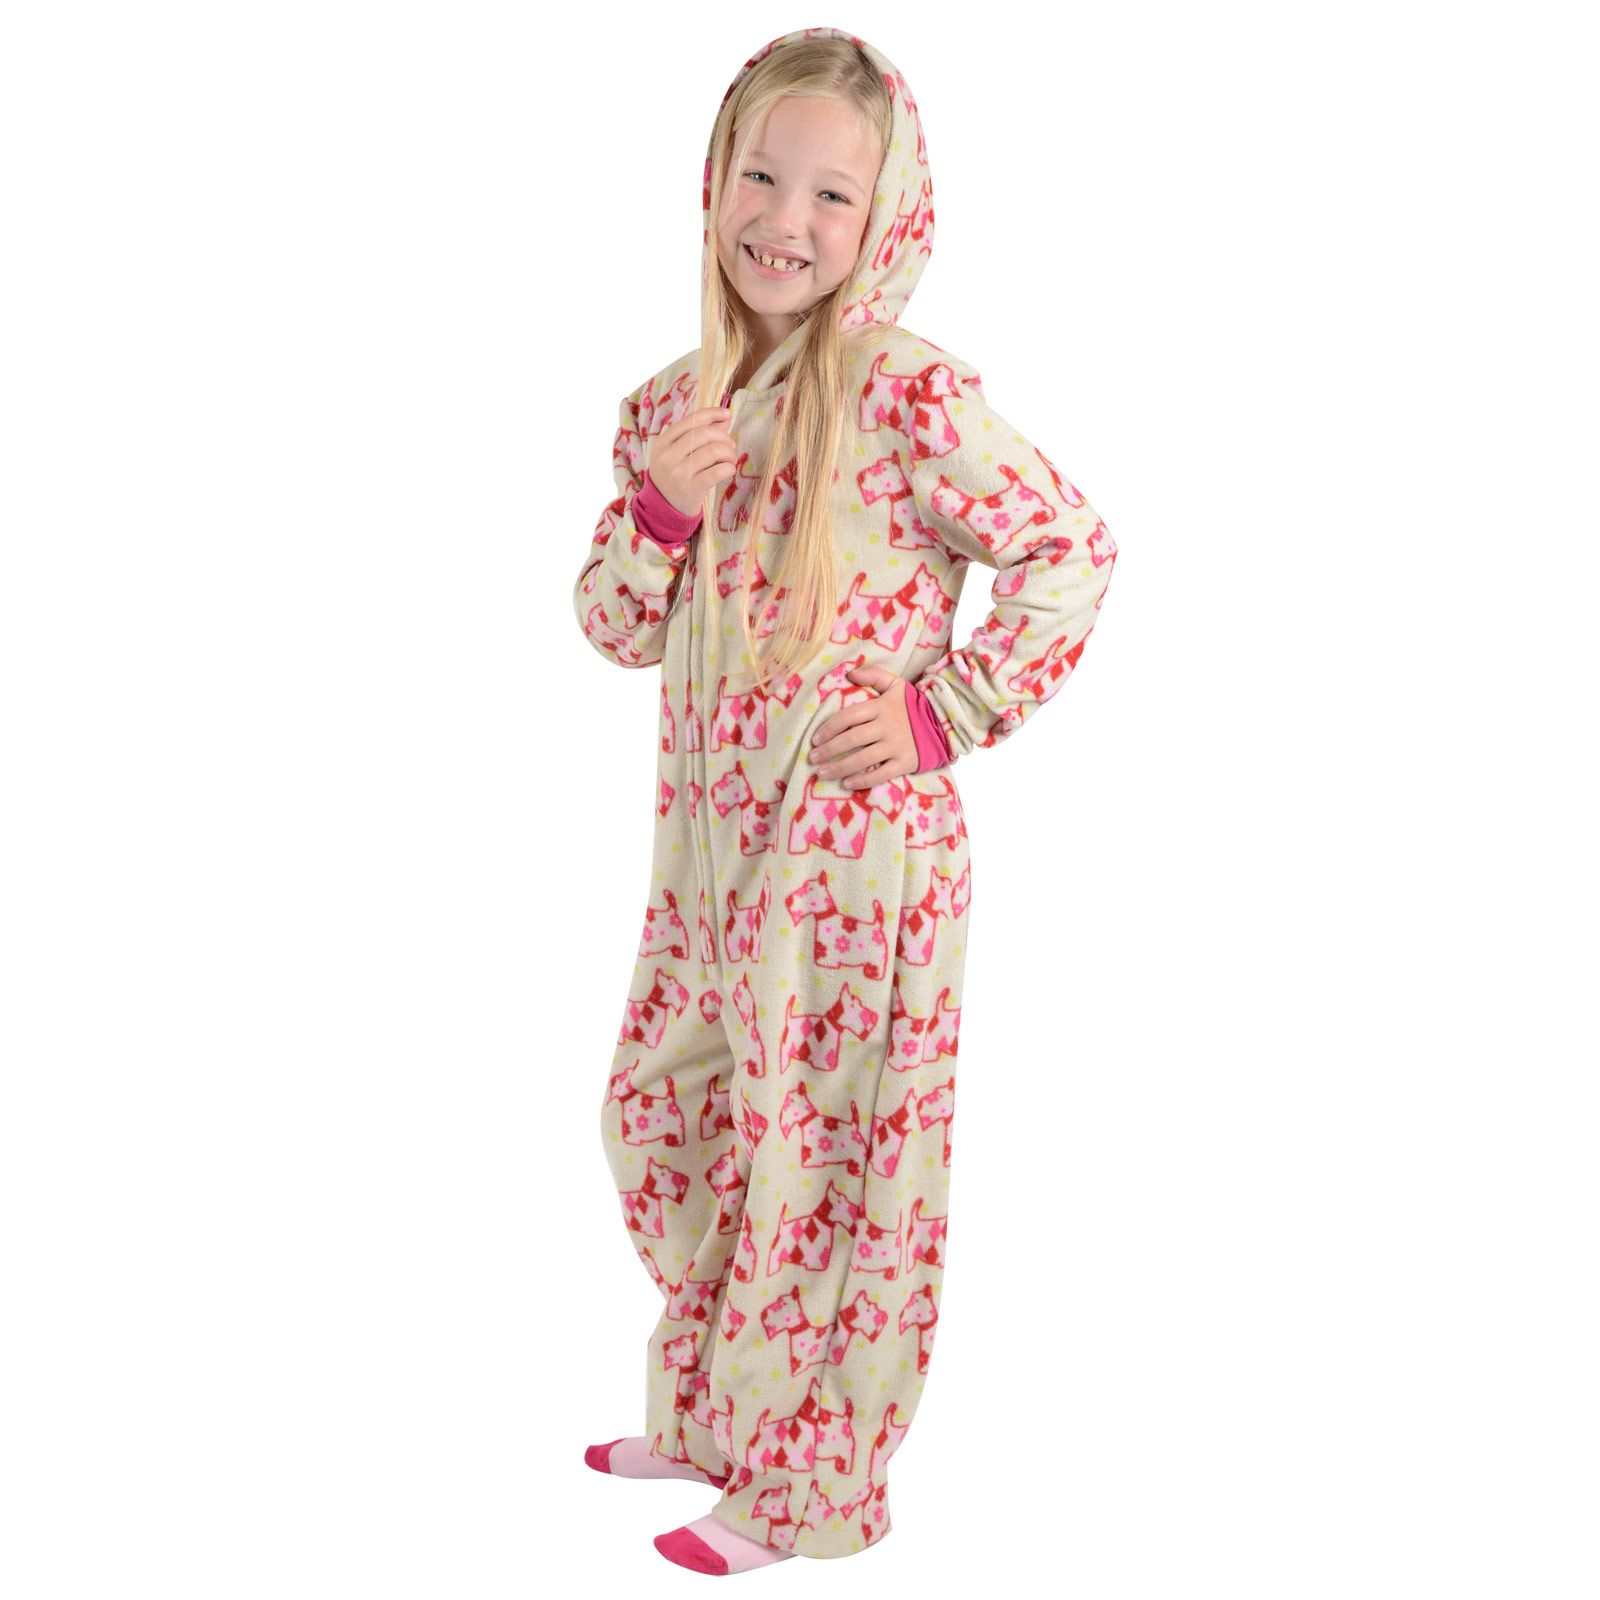 Enjoy free shipping and easy returns every day at Kohl's. Find great deals on Girls Kids One-Piece Pajamas at Kohl's today!